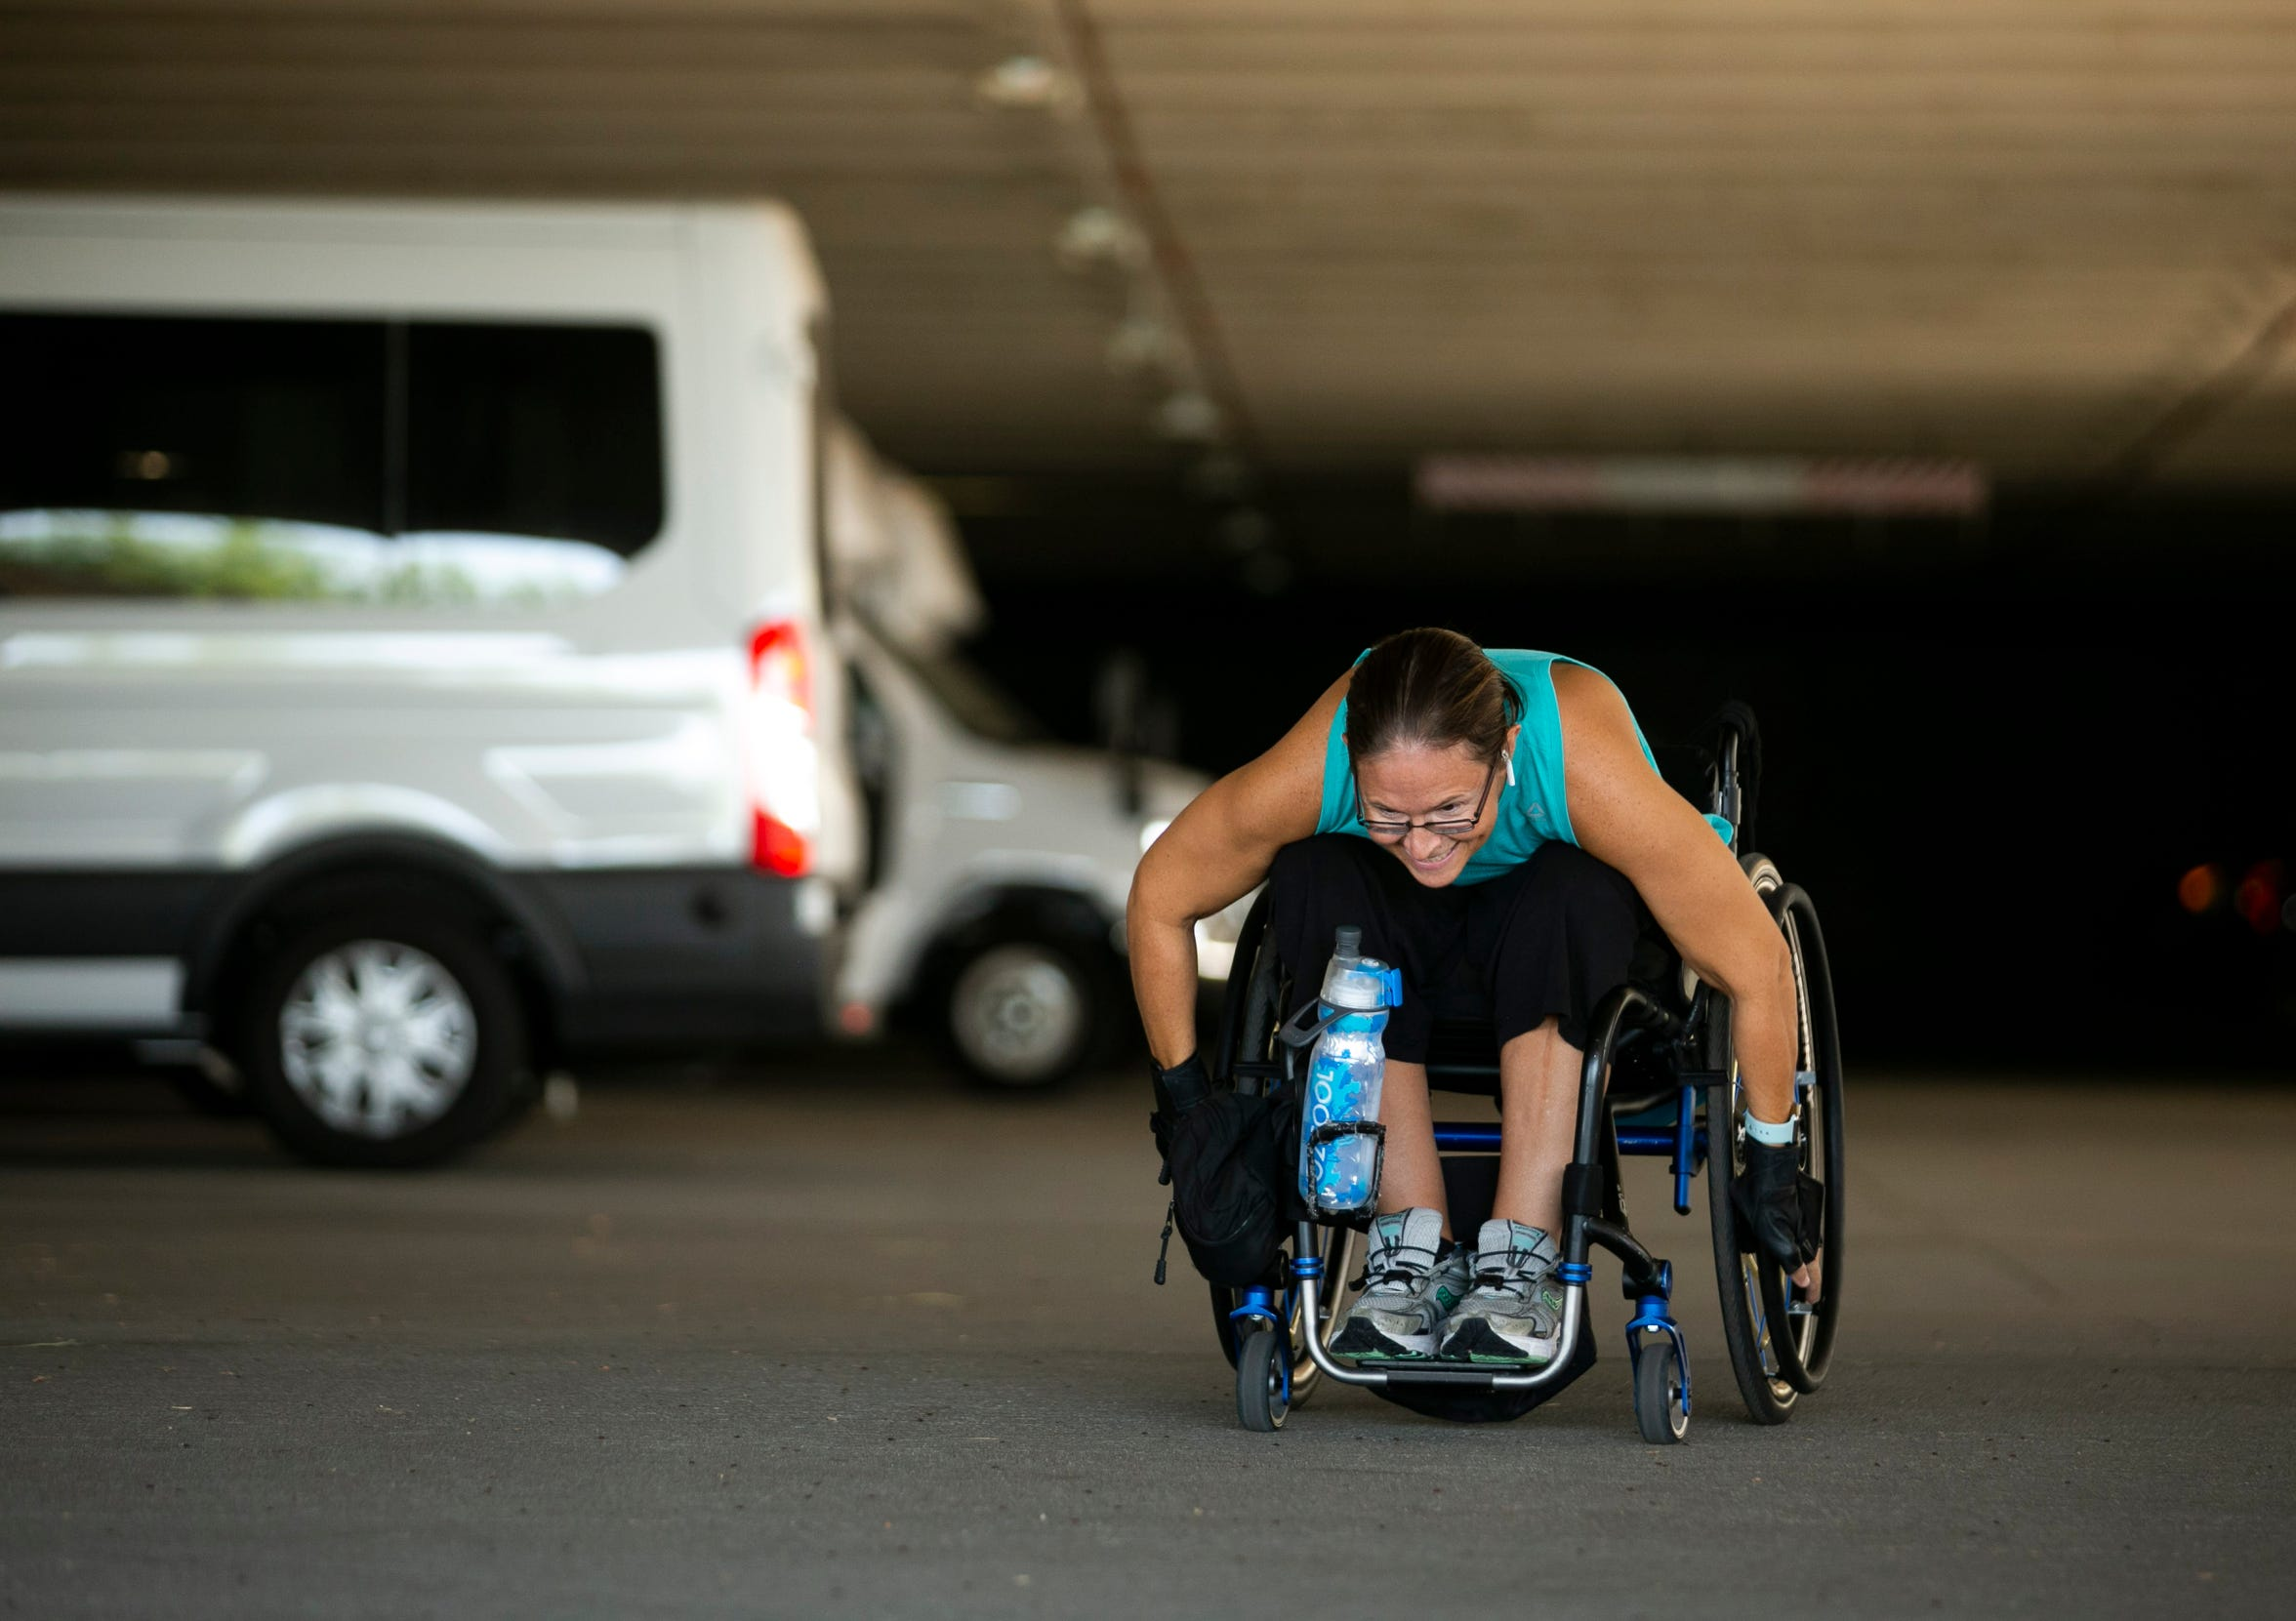 Jen Chaillie, 38, of Tempe, who is paralyzed from the chest down, pushes up the ramps in the parking garage at Ability360, a Phoenix fitness and community center for people with disabilities, on Sept. 2, 2020.